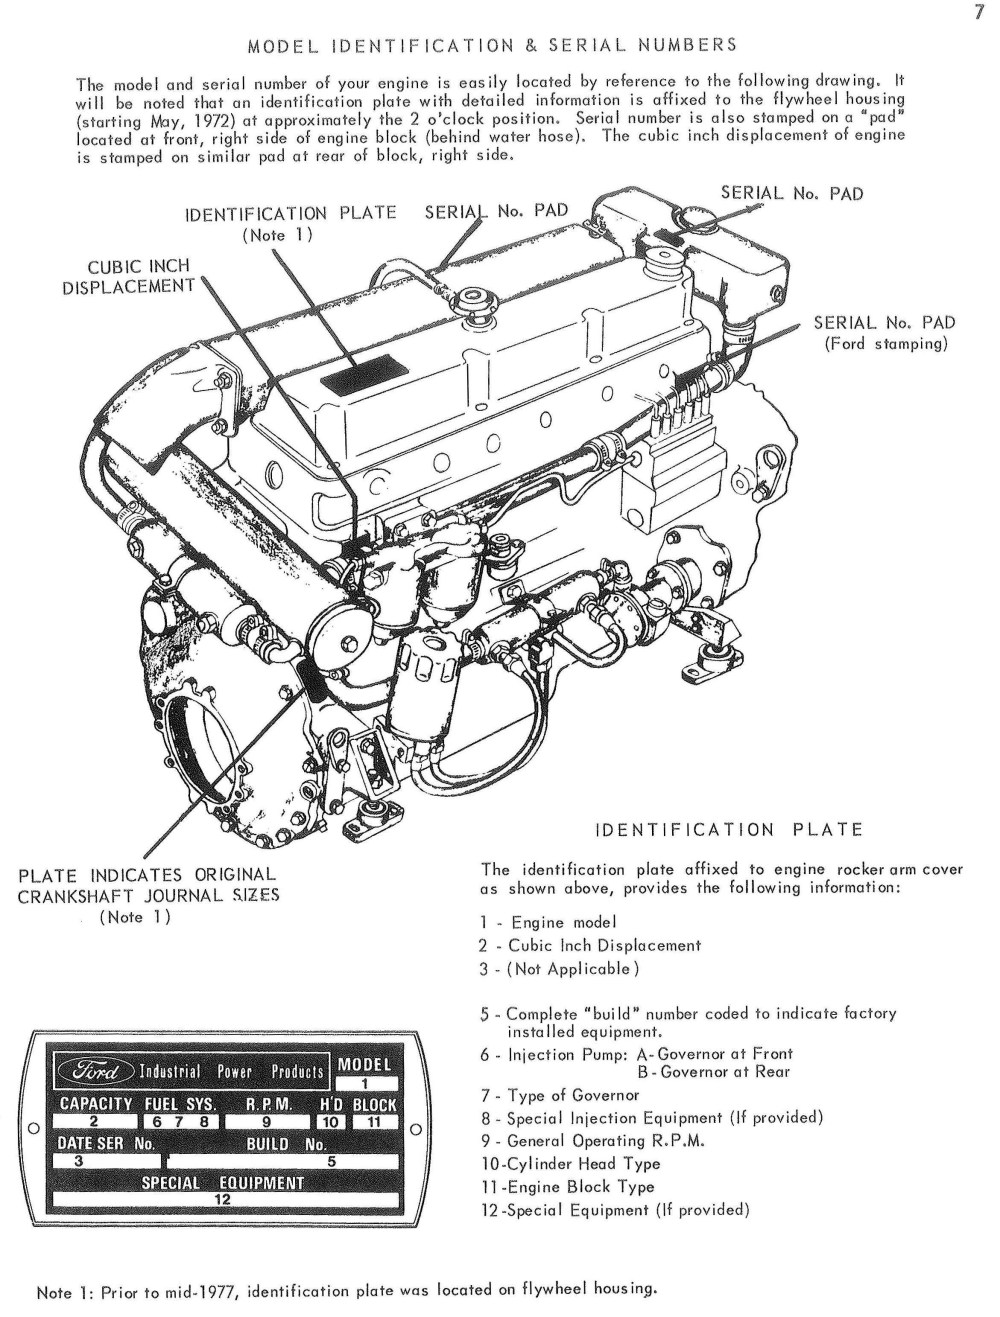 medium resolution of the number embossed on the ford industrial power products id plate in the date ser no box as shown on the bottom left of the above manual page is not the